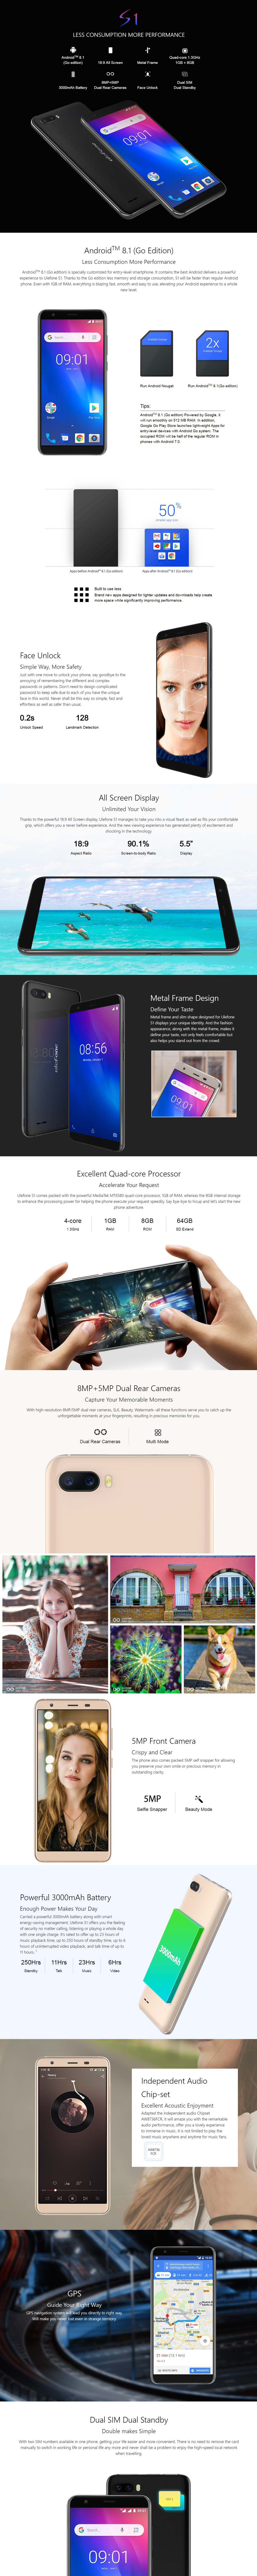 screencapture-ulefone-products-s1-features-html-2018-09-04-16_16_31c5669e5730999bde.jpg